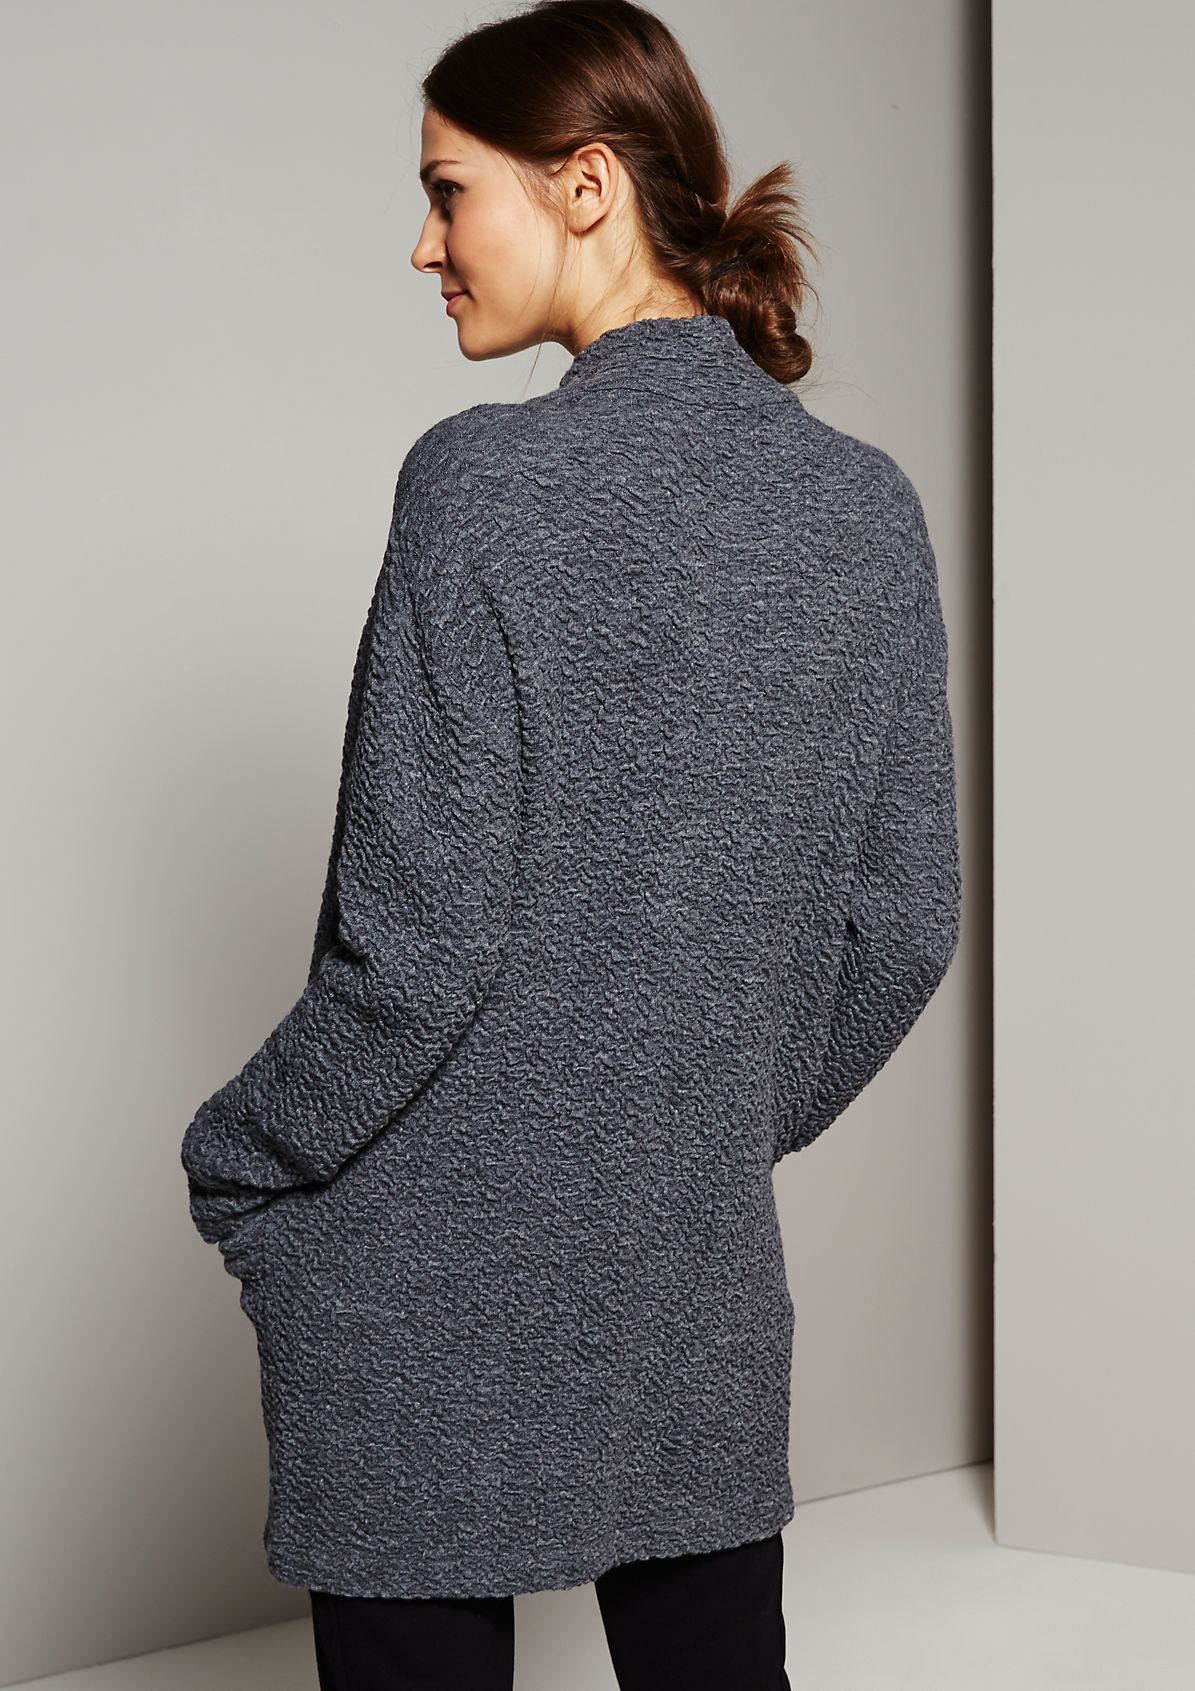 Soft cardigan with a beautiful textured surface from s.Oliver